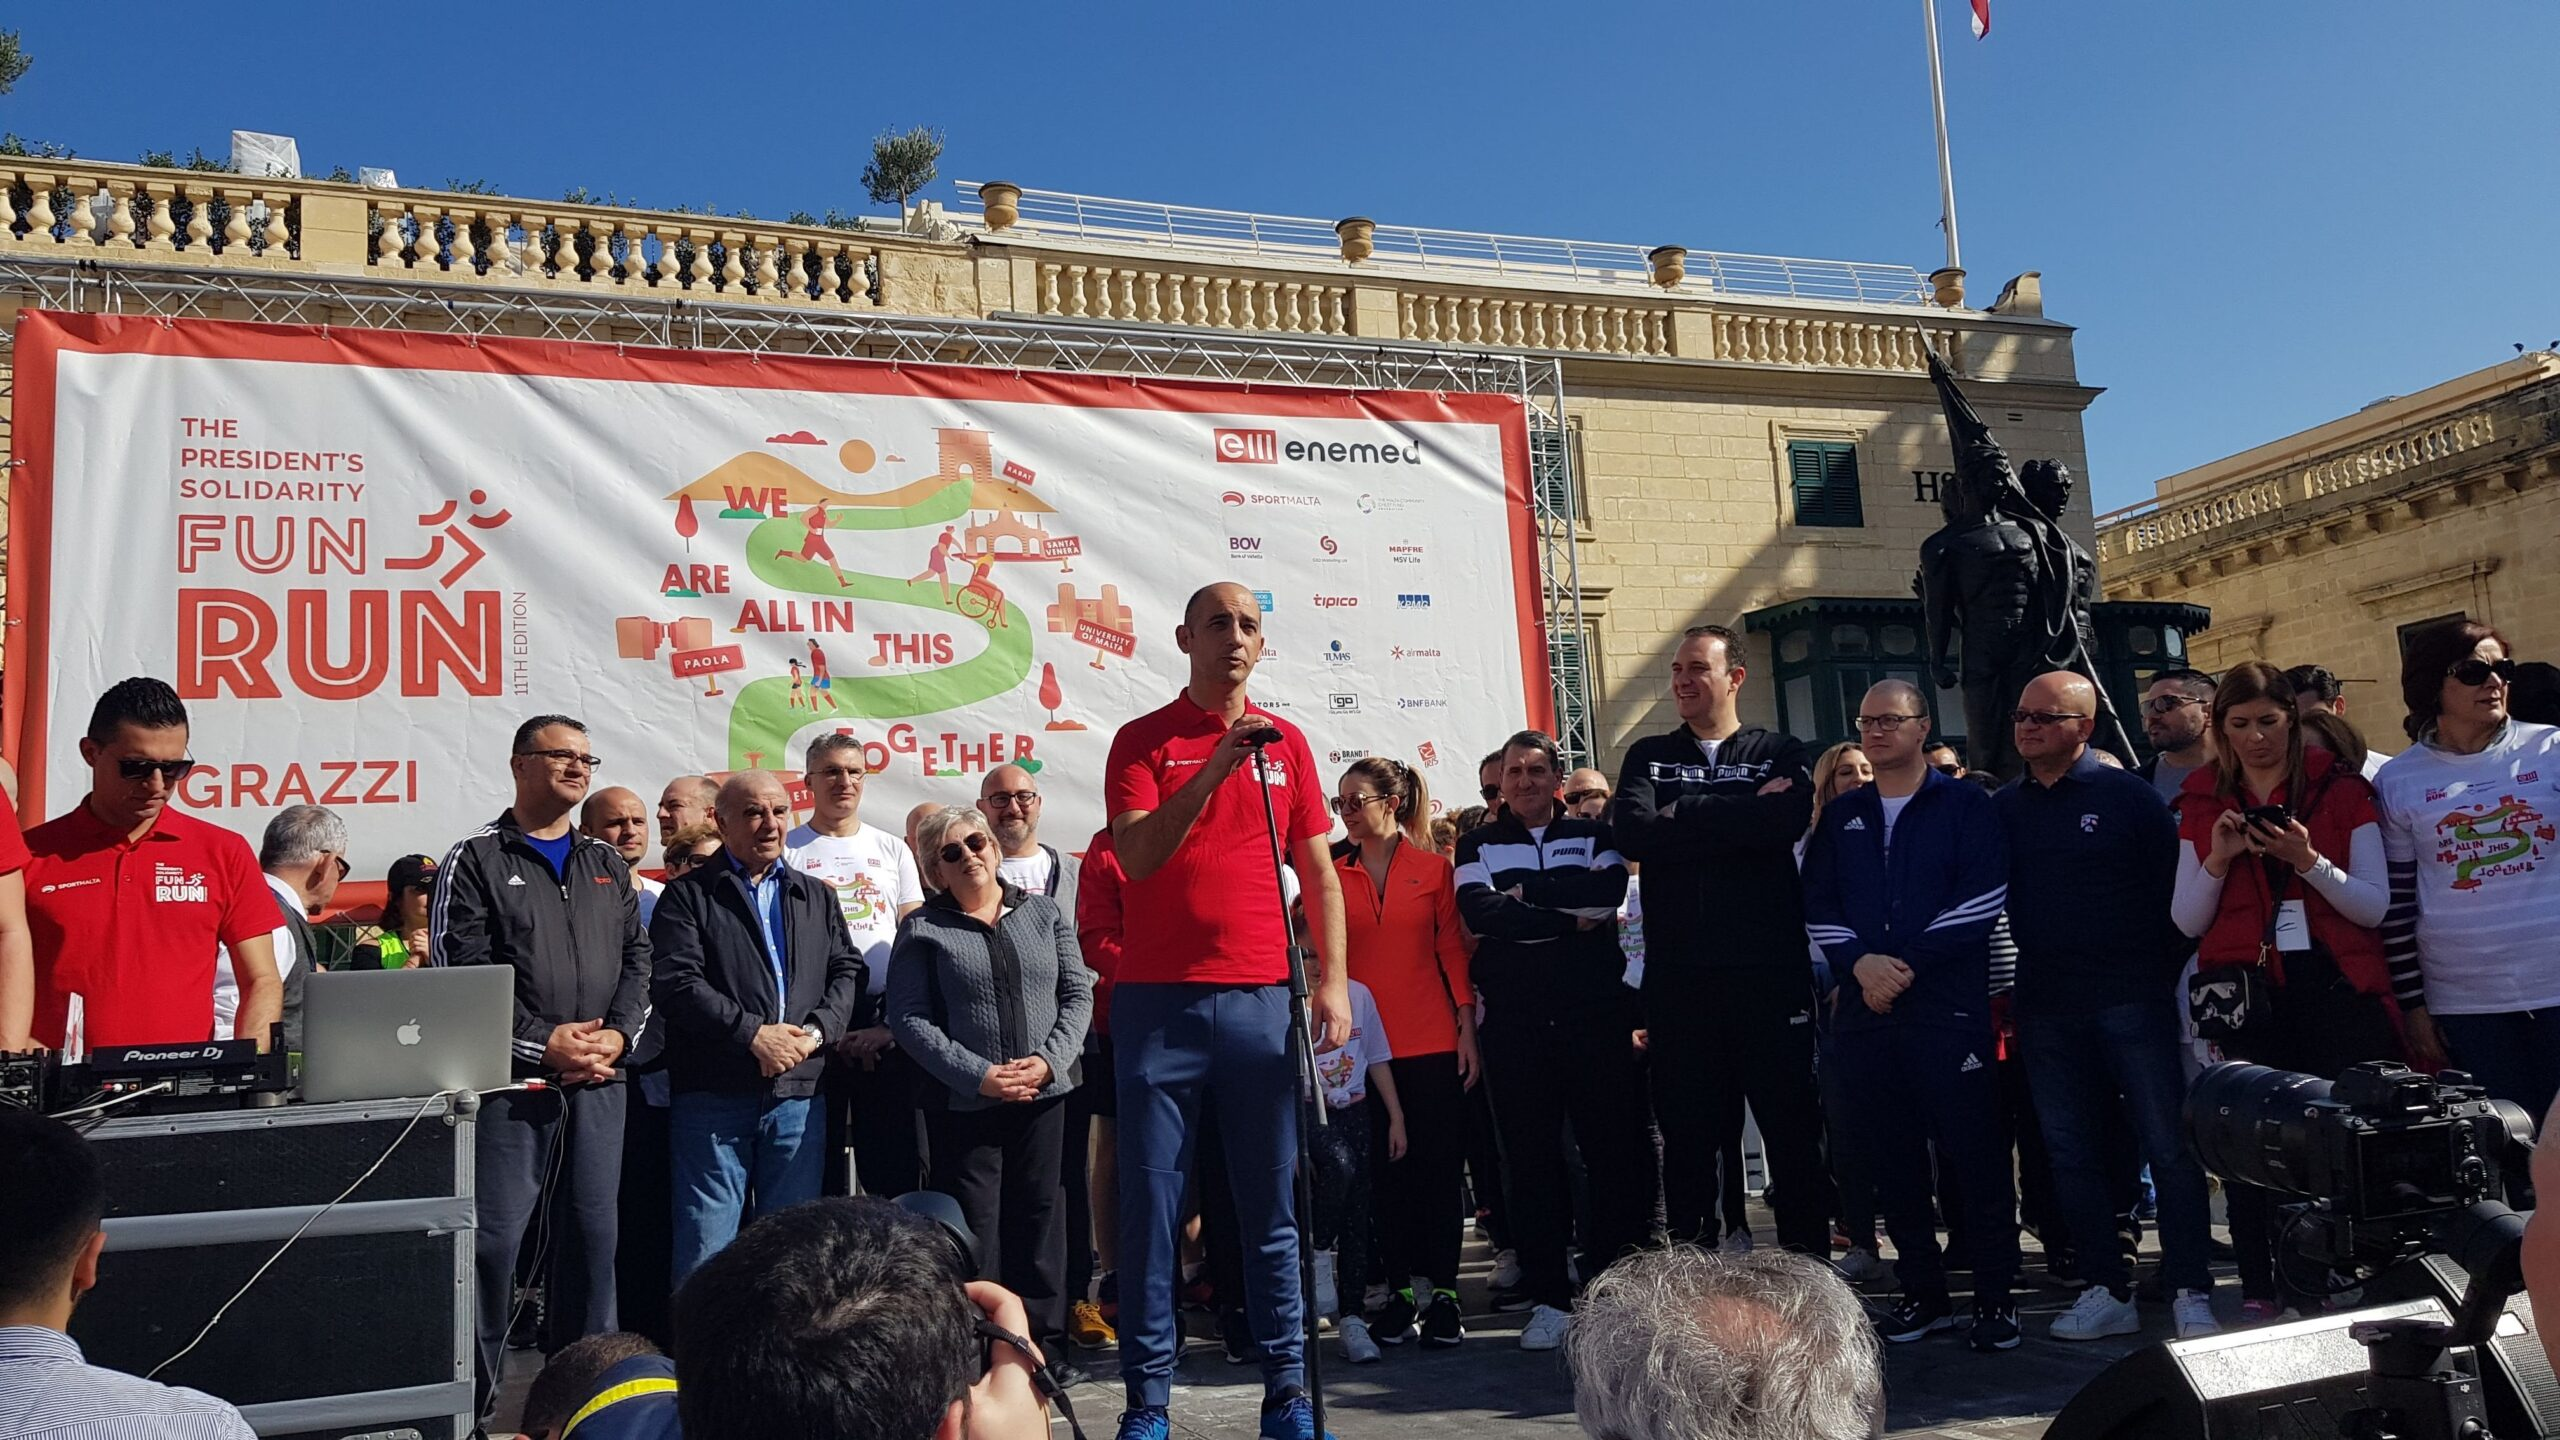 Sportmalta CEO Mark Cutajar addressing the participants of the President's Fun Run in St George's Square Valletta